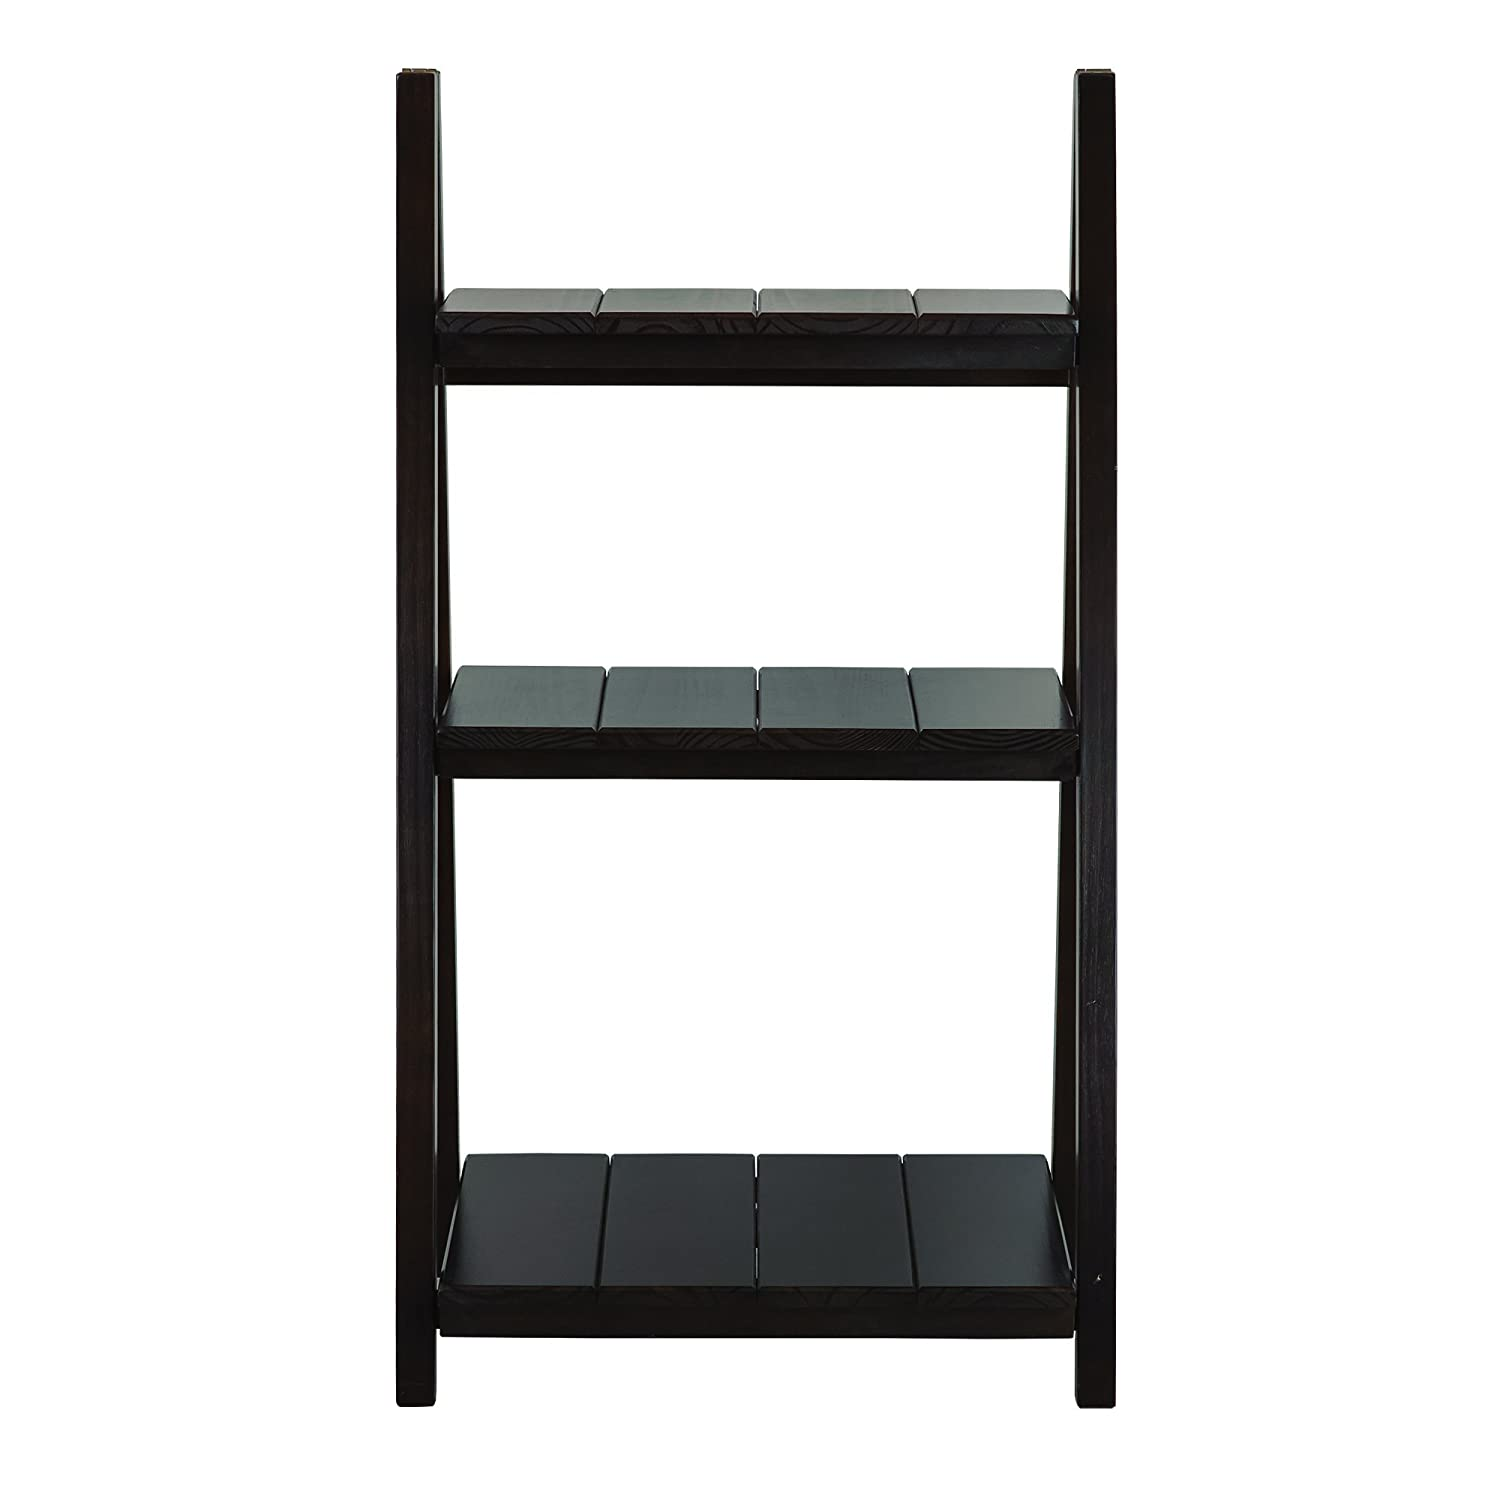 folding ebay small interior how bookshelf spring wash extra fold using white tos in display shelf tier a ja to design your ladder diy up book own free studio collapsible shelves unit apartment greenhouse basement foldable build needed apartments standingfolding